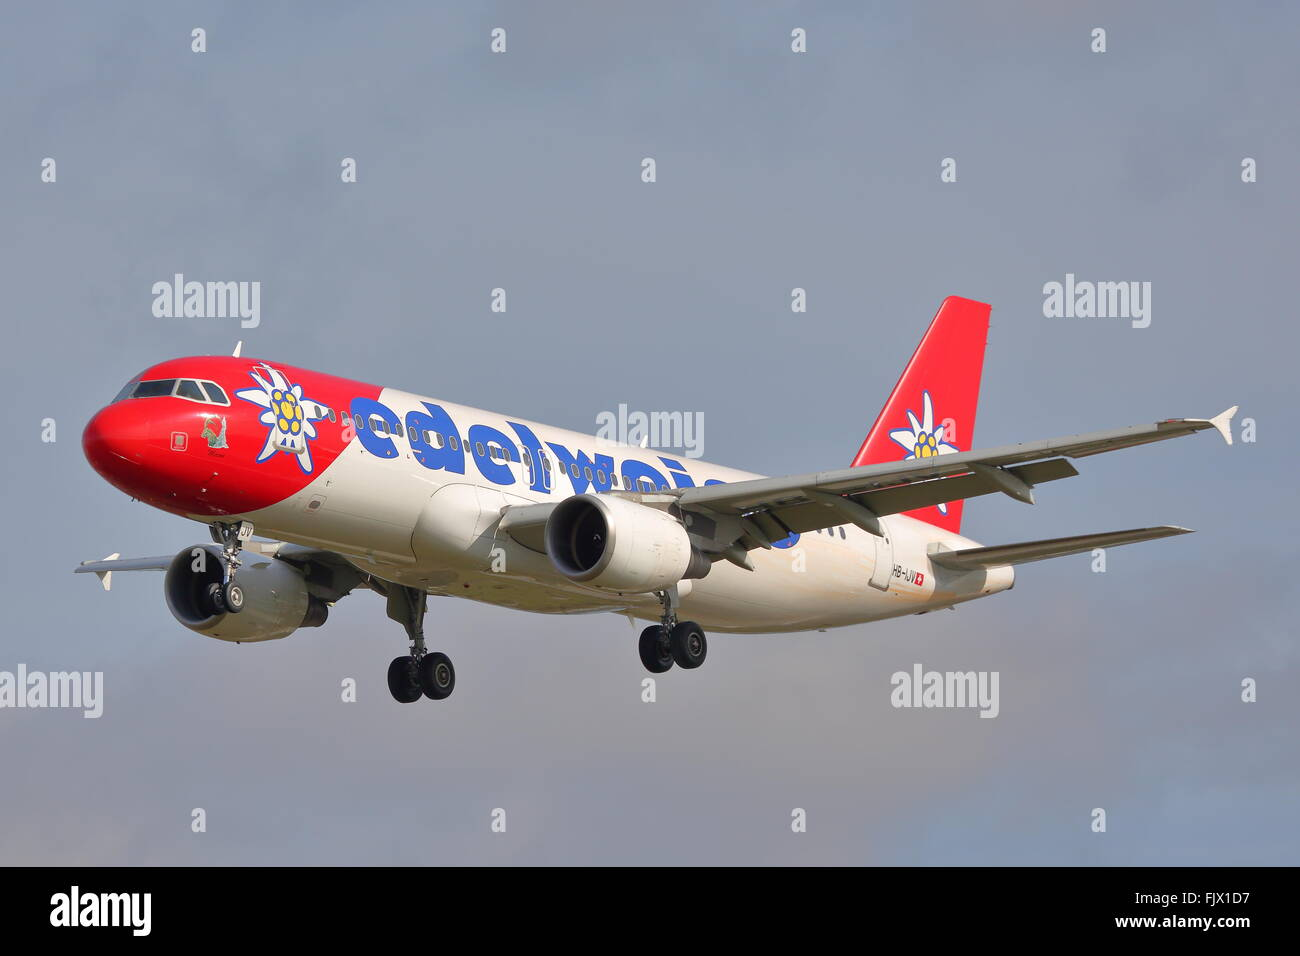 Edelweiss Air Airbus A320-200 HB-IJV landing at Heathrow - Stock Image